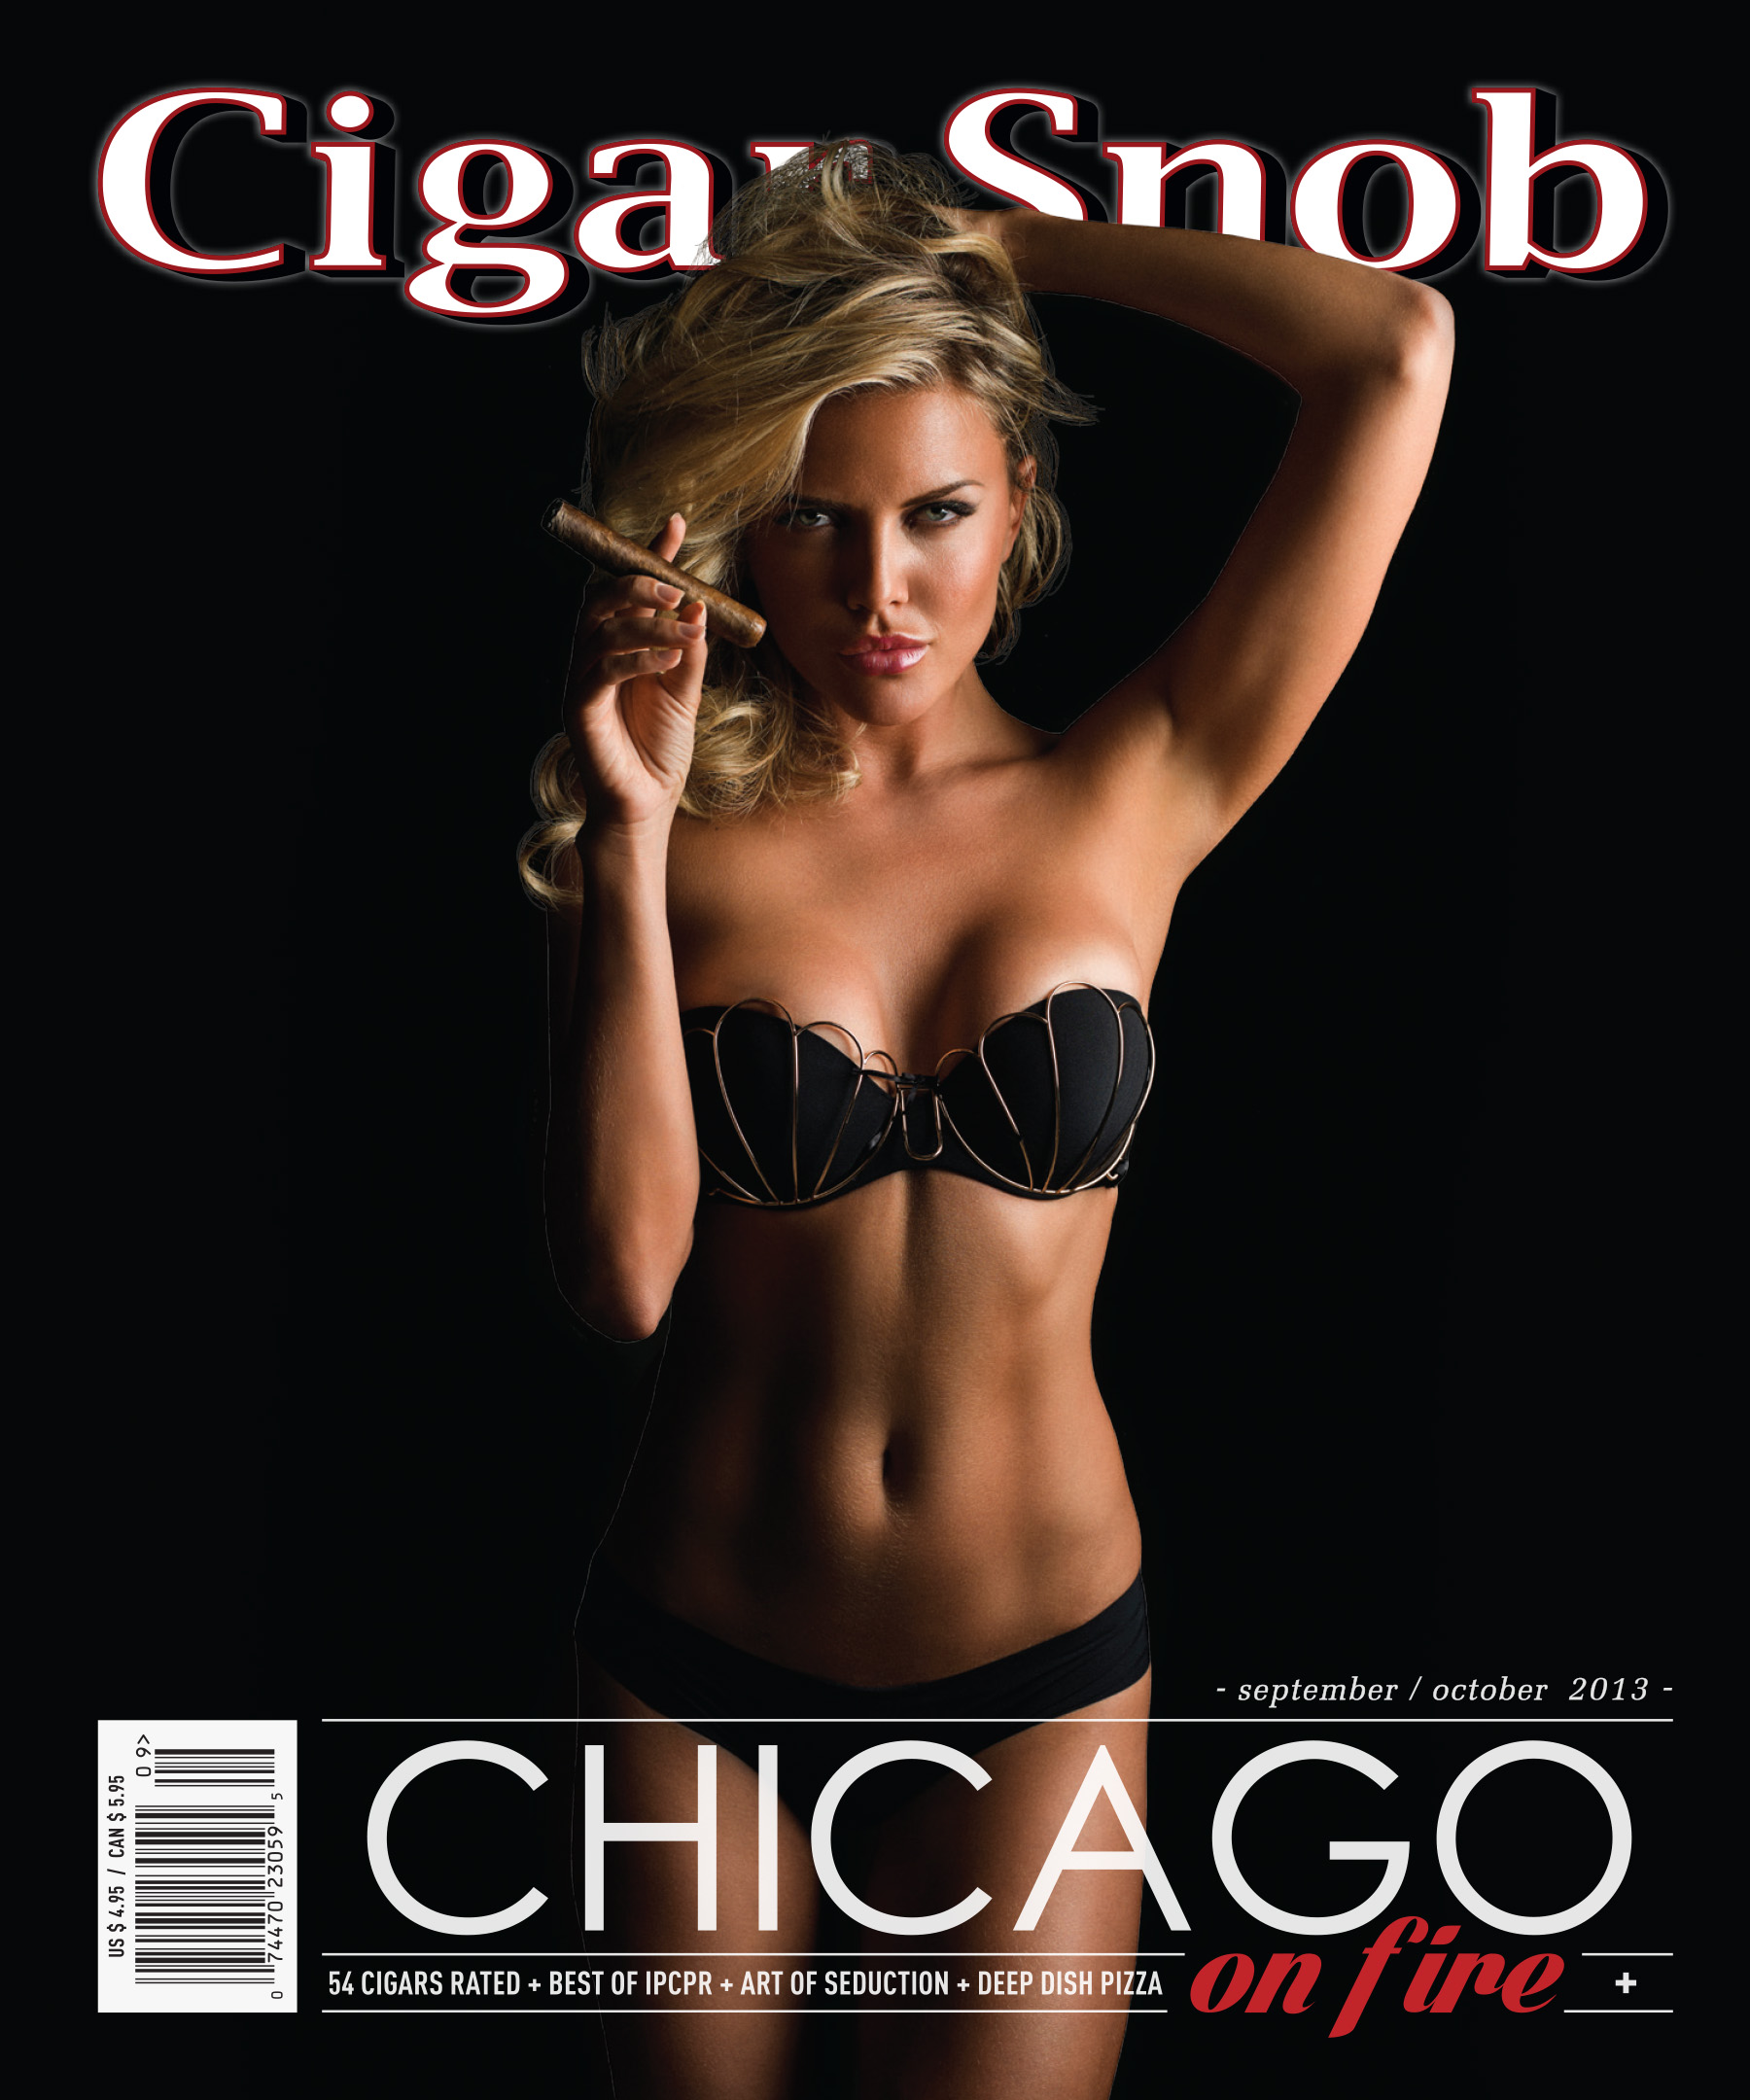 Click on picture to go to reviews of the newly blended Camacho cigars